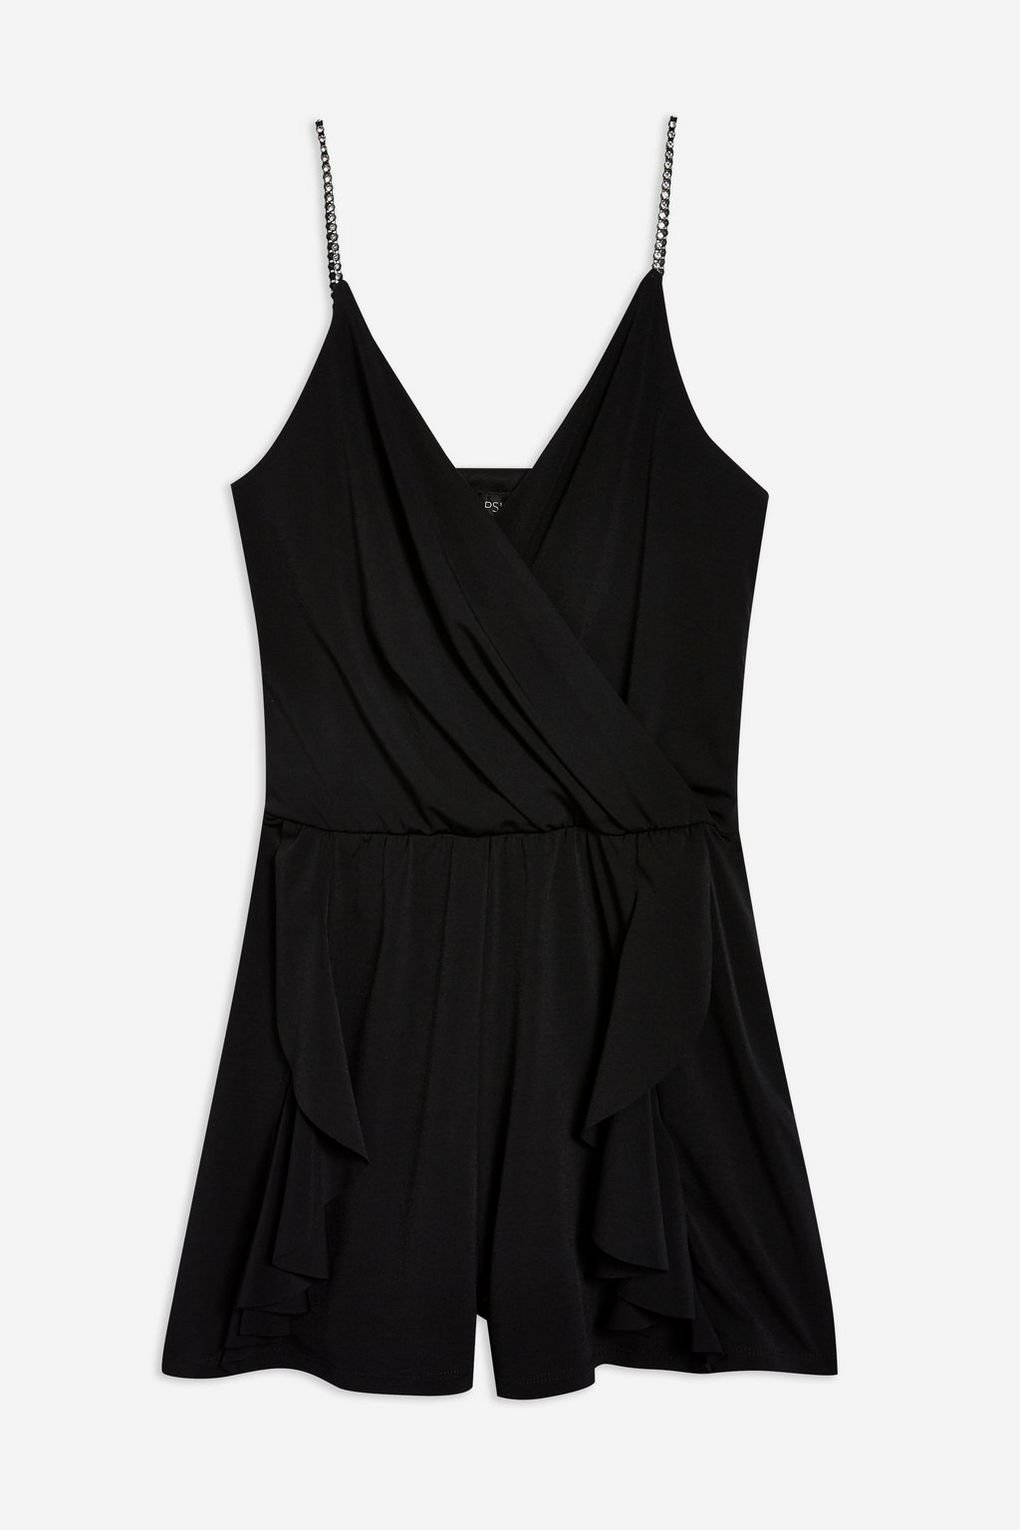 Crystal Strap Playsuit - Playsuits & Jumpsuits - Clothing - Topshop